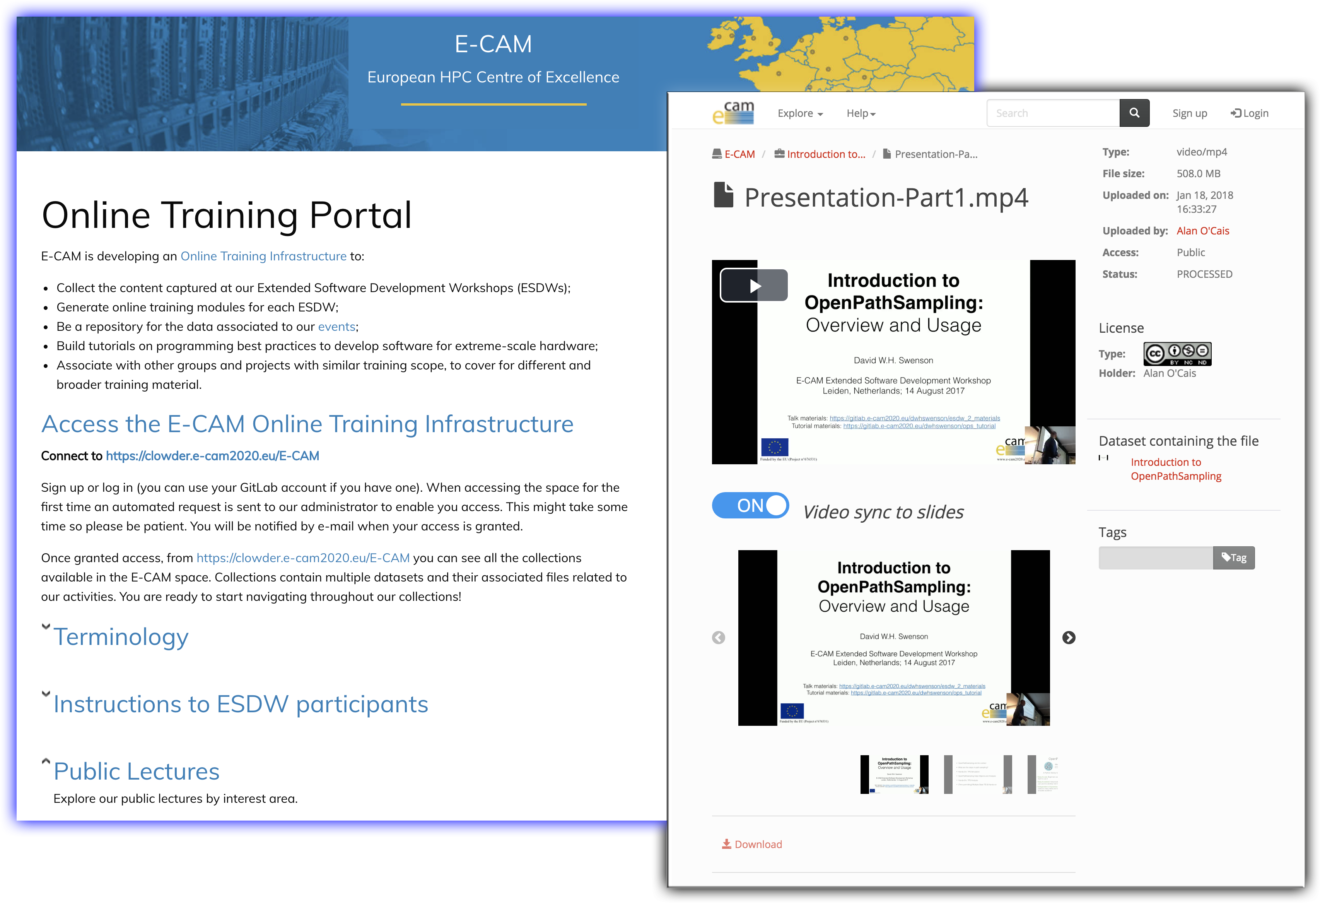 e-cam_online_training_portal_graphics